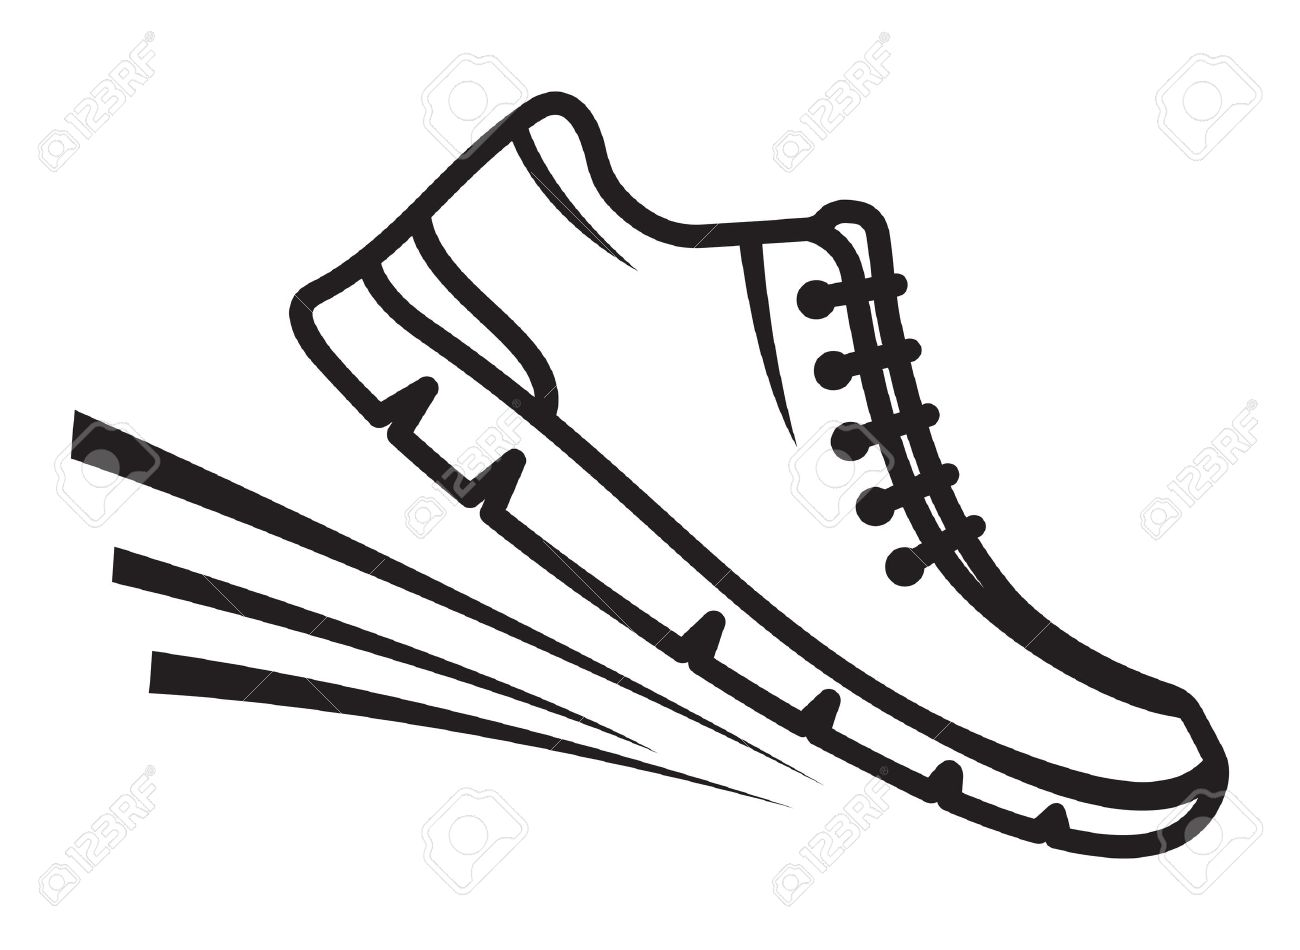 running shoes drawing at getdrawings com free for personal use rh getdrawings com cartoon running shoes clipart running shoes clipart png